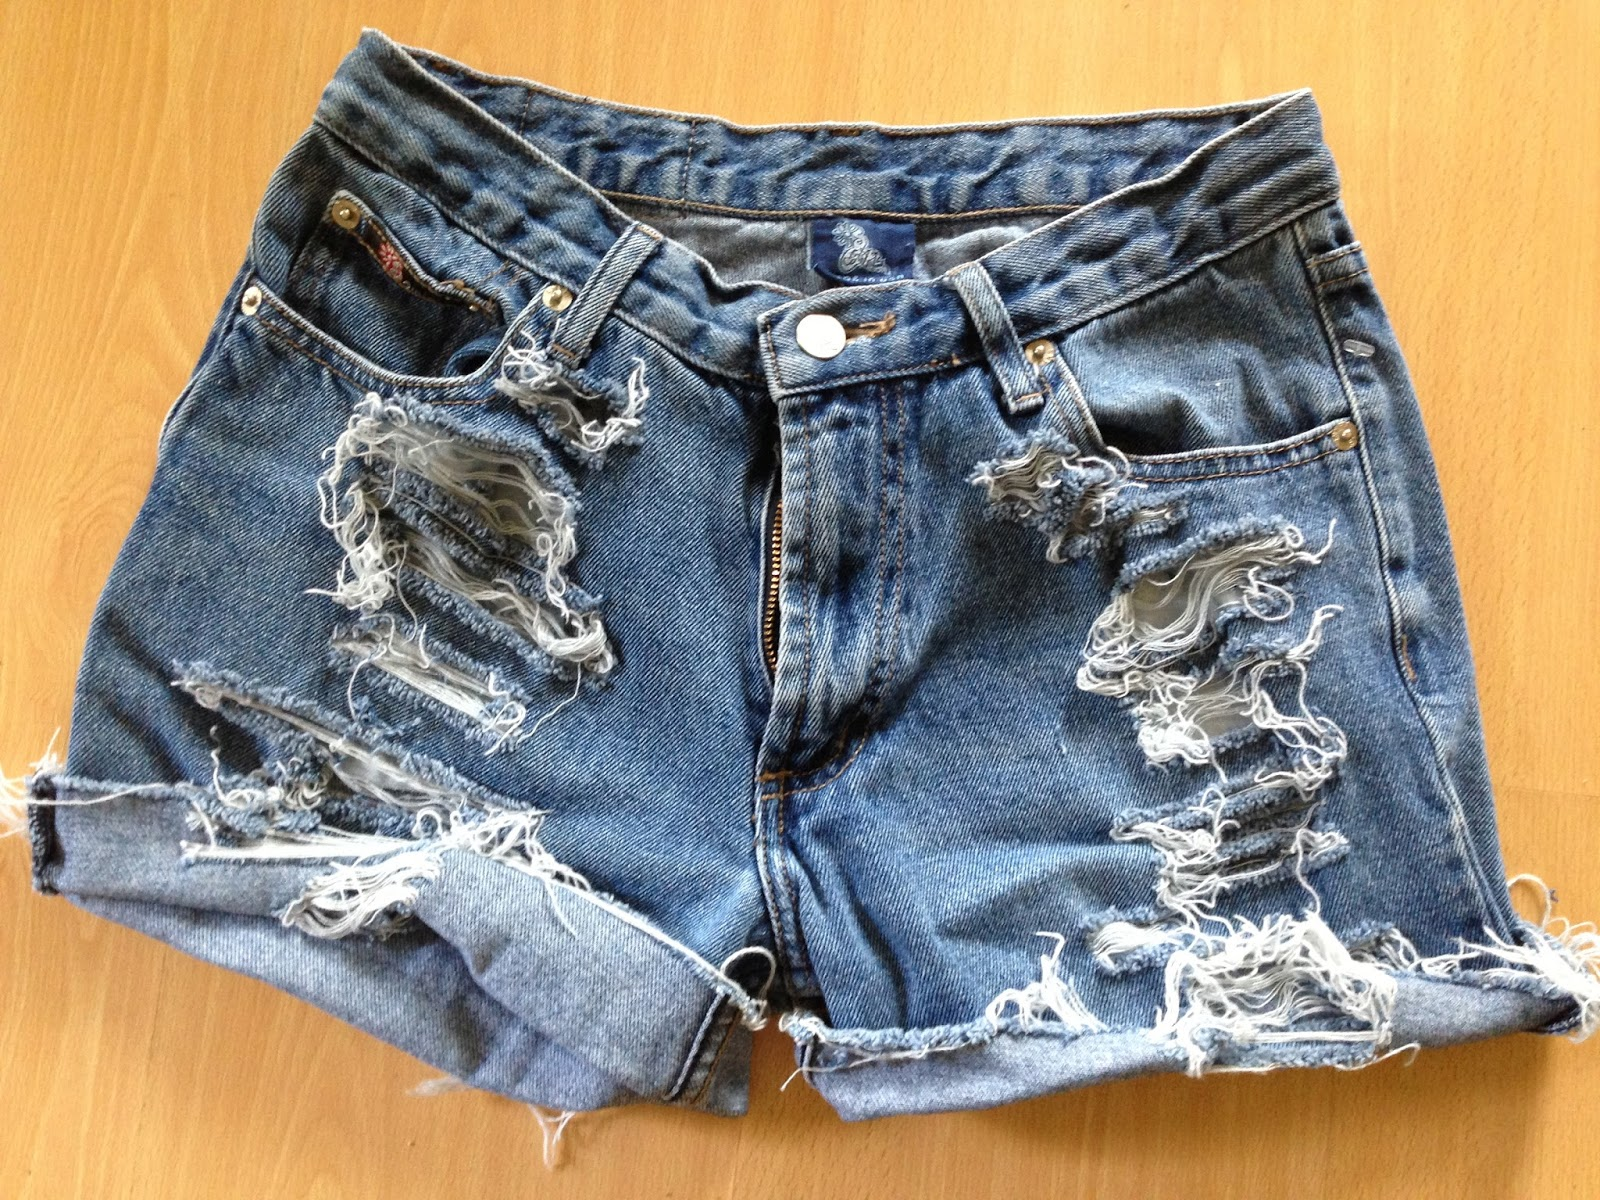 Prudence and Austere: DIY Distressed Denim Shorts